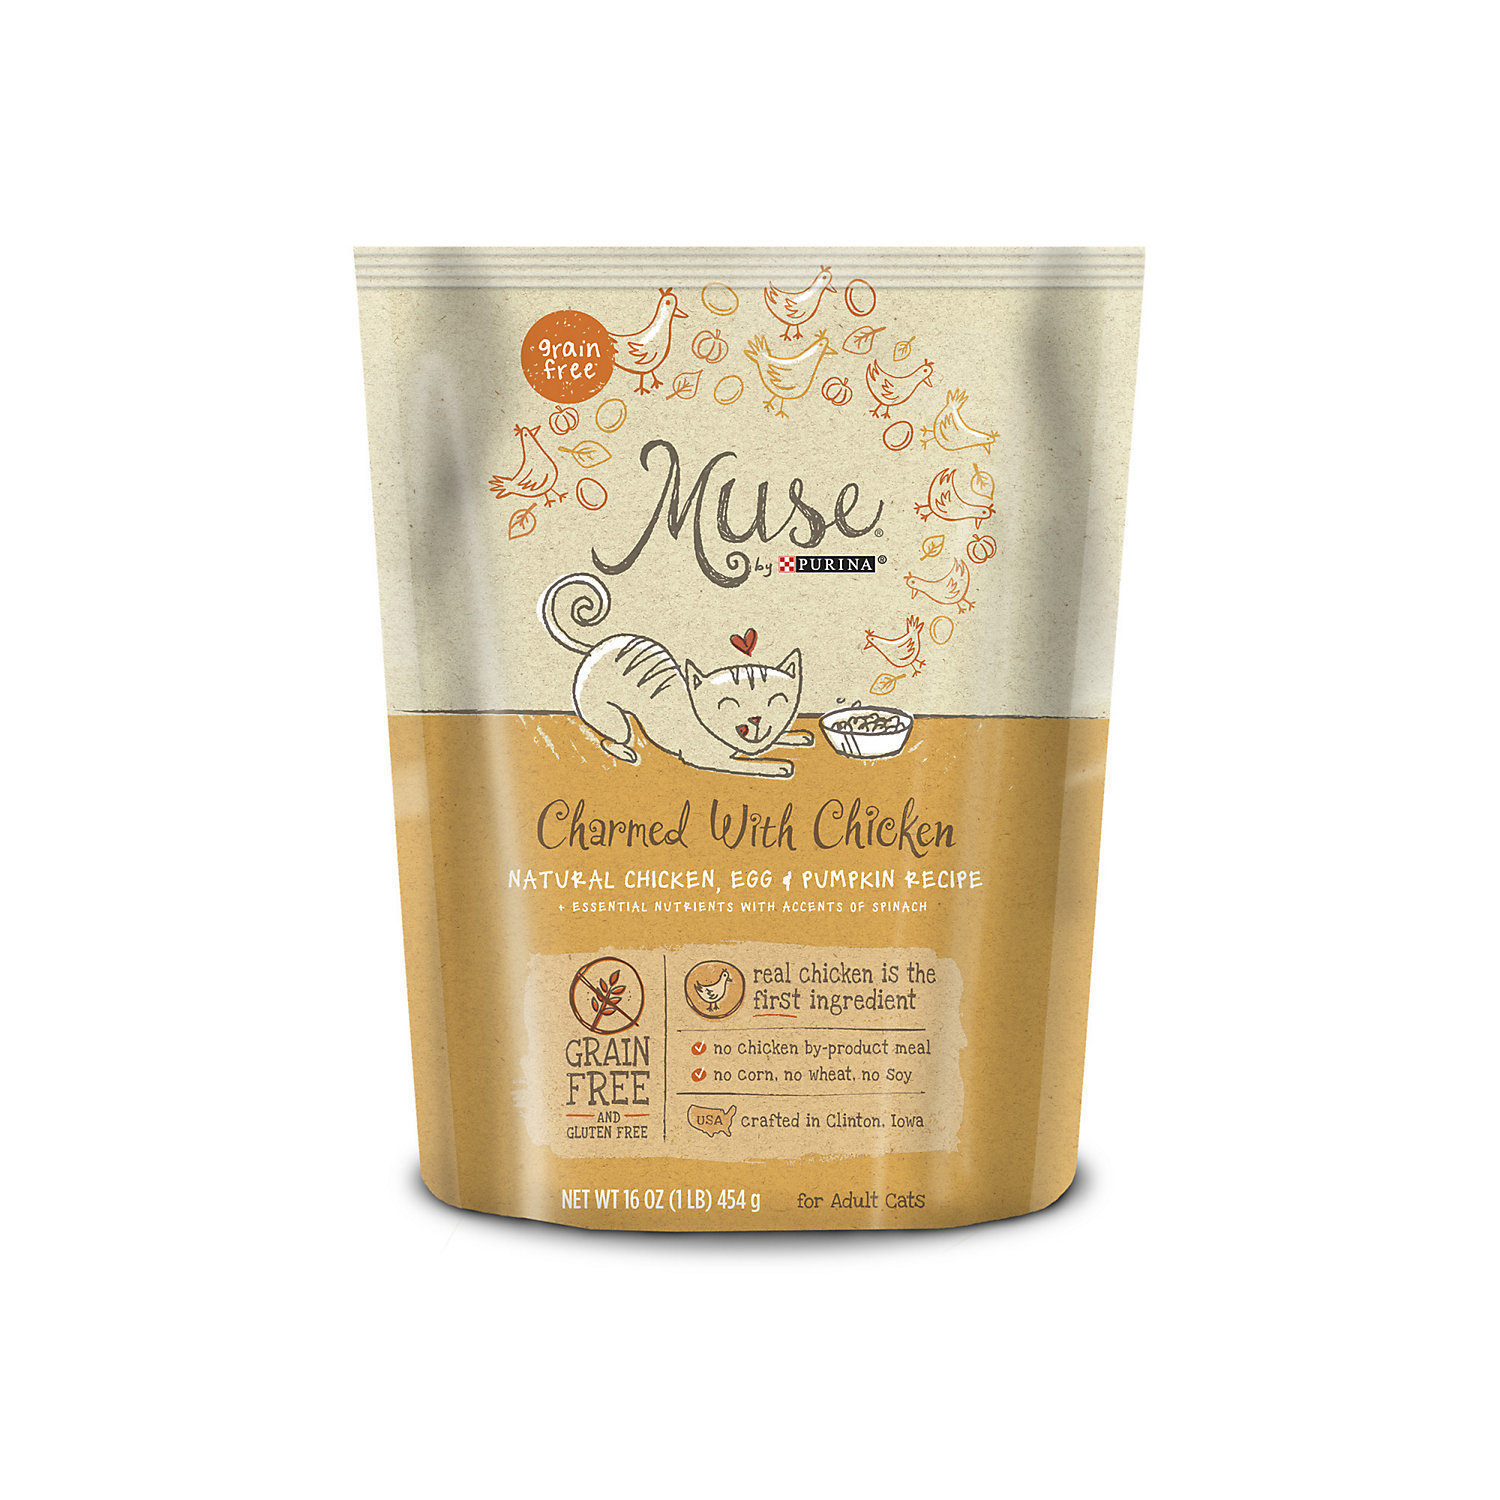 Muse by Purina Charmed With Chicken Natural Chicken, Egg & Pumpkin Recipe Cat Food 1 lb (3/19) (A.J1)